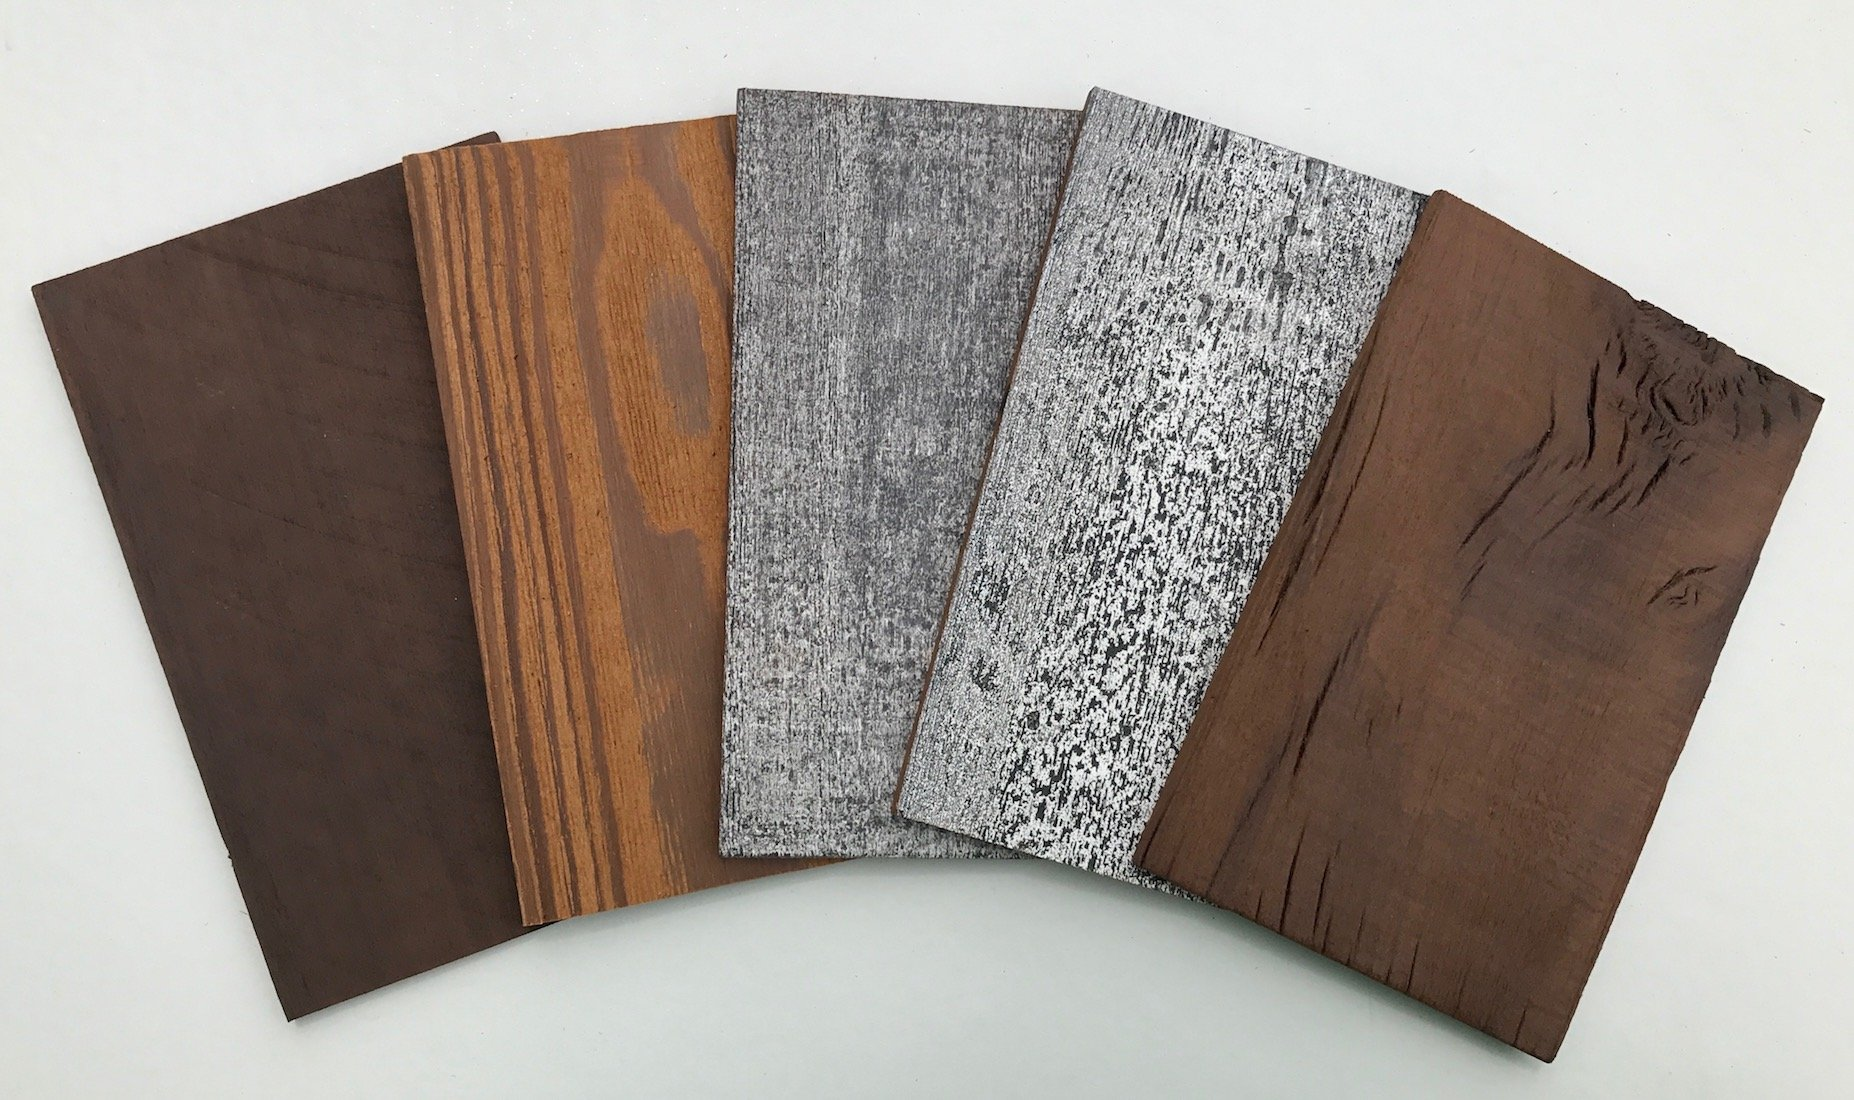 Samples of Smart Paneling 3D Wood Wall Planks 1/4 in. x 5 in. x 8 in. (5 - Case)